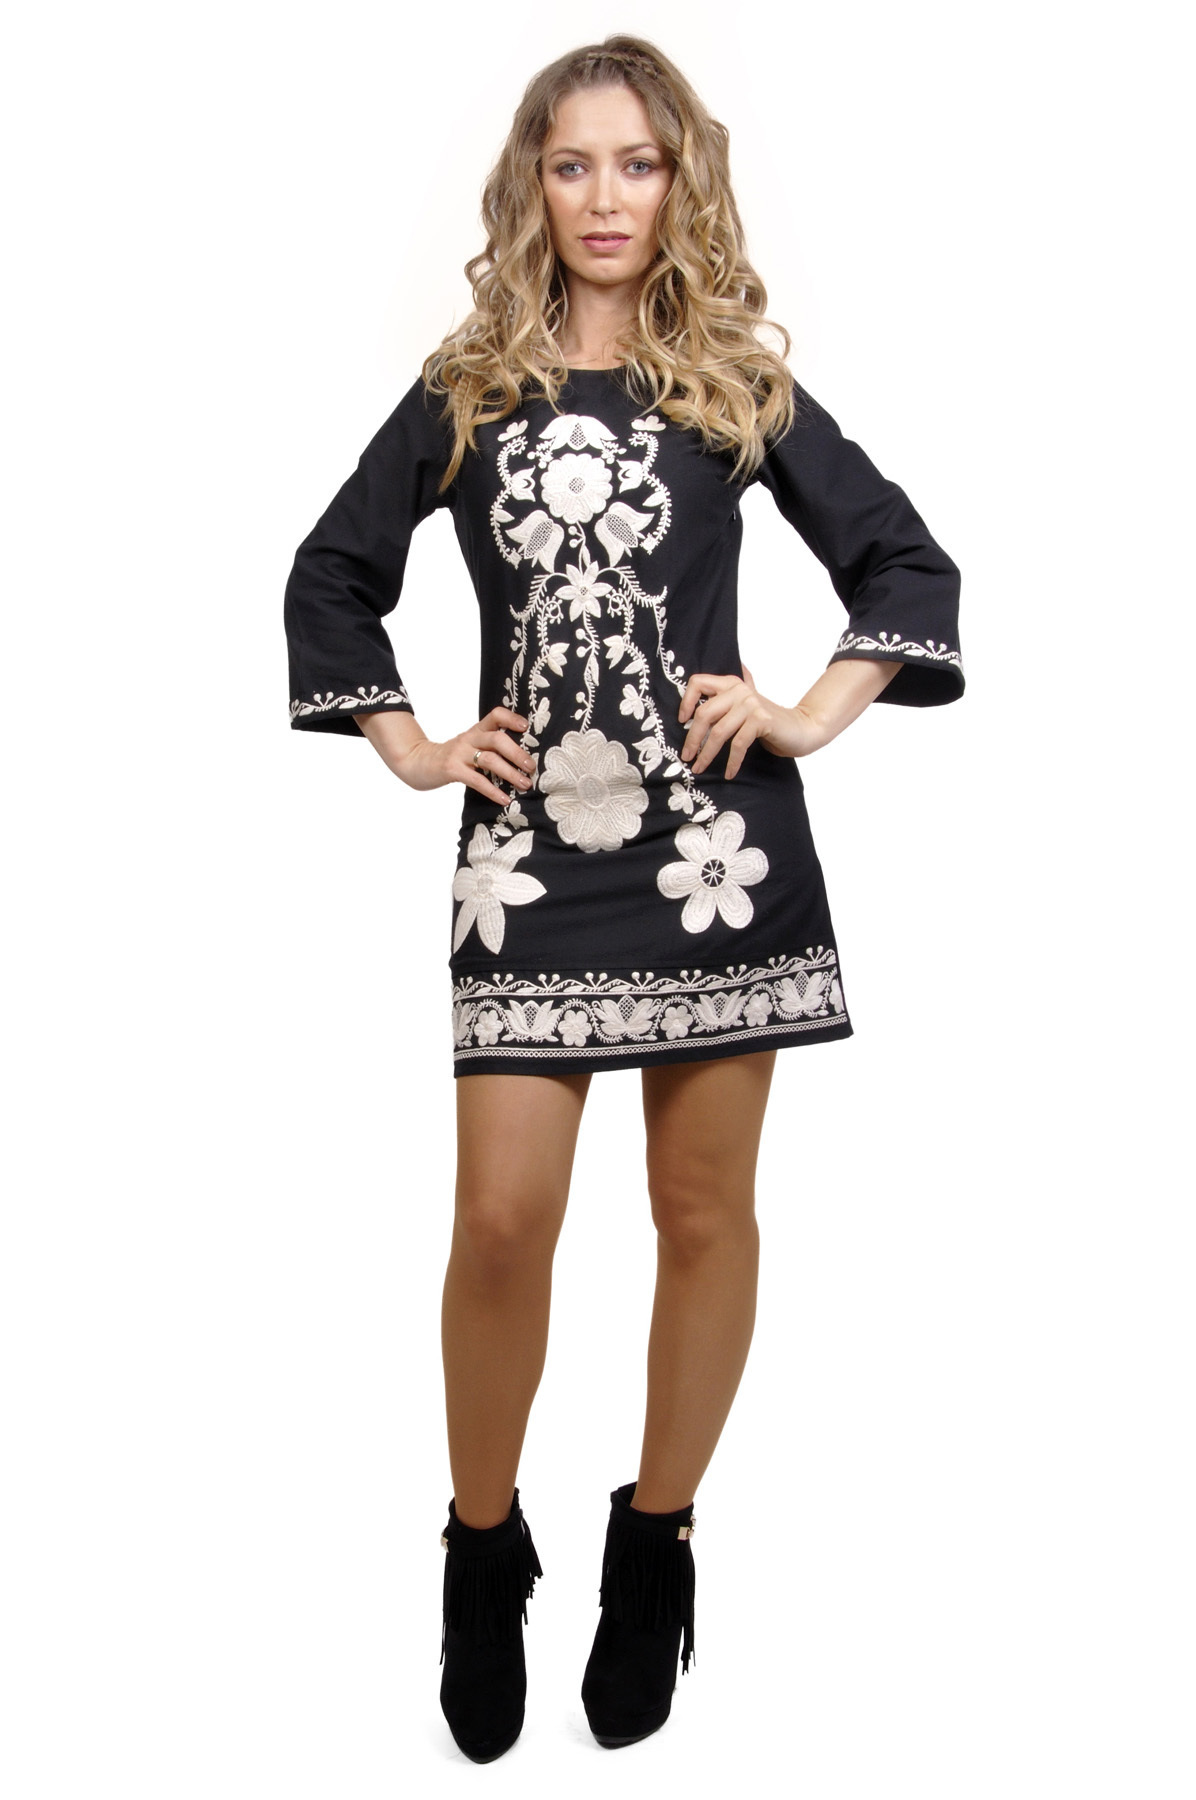 Savage Culture: Snowflakes Odile Embroidered Dress (1 Left!)